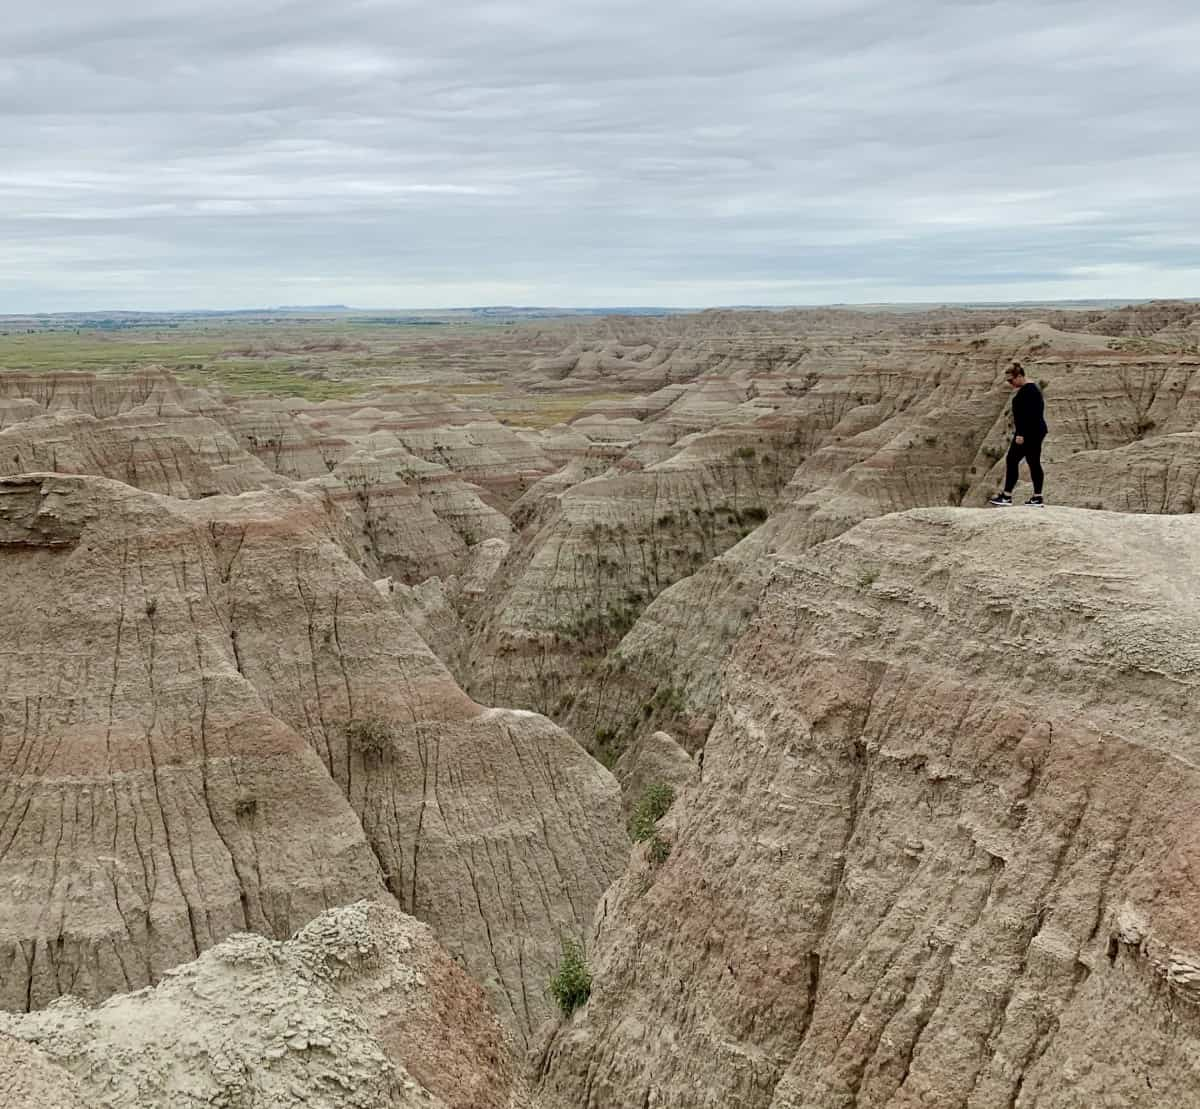 Visiting Badlands National Park is a perfect day trip from Rapid City